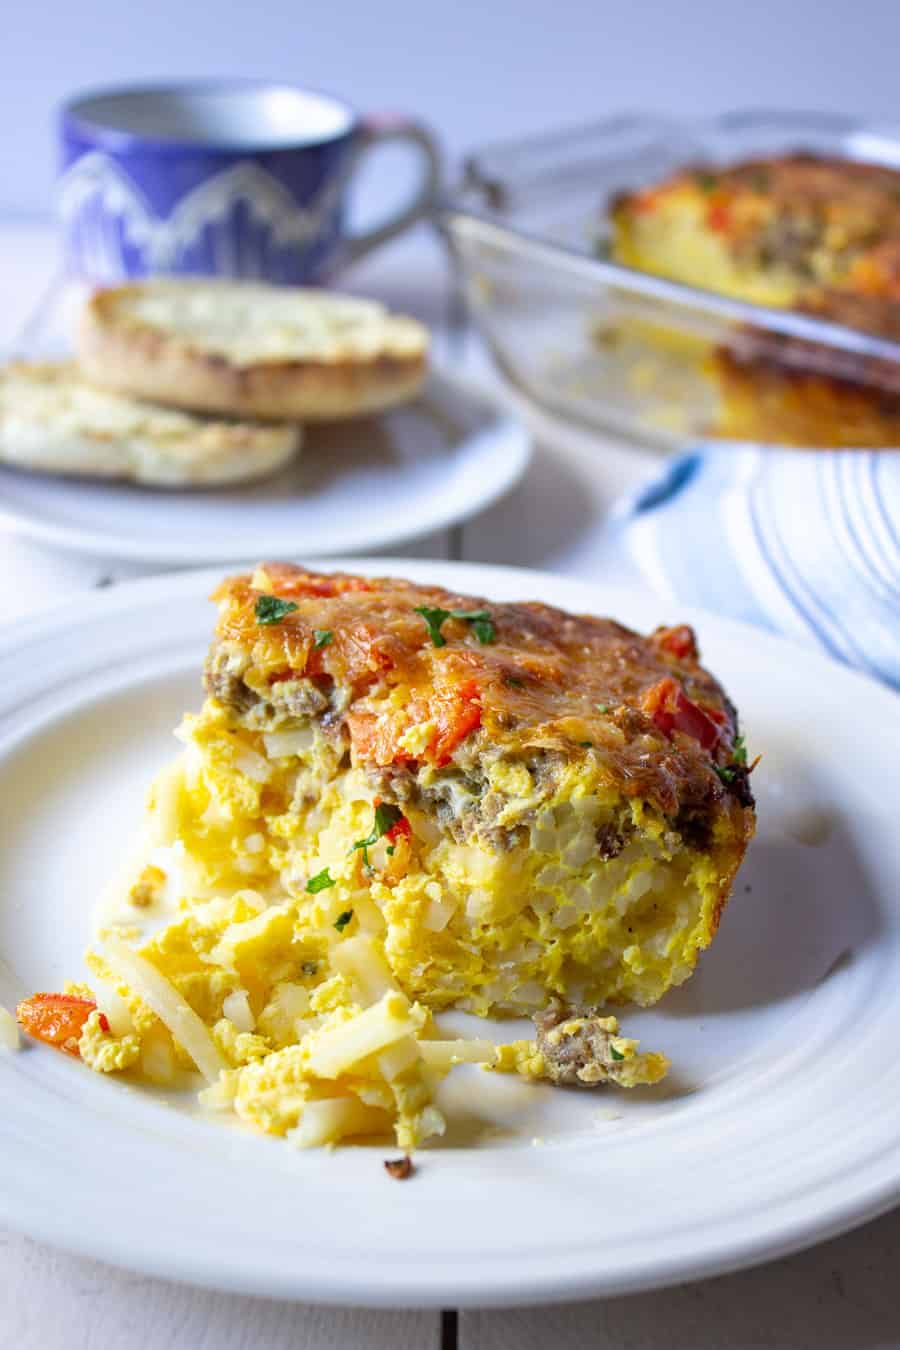 Egg casserole with hash browns and bell peppers.